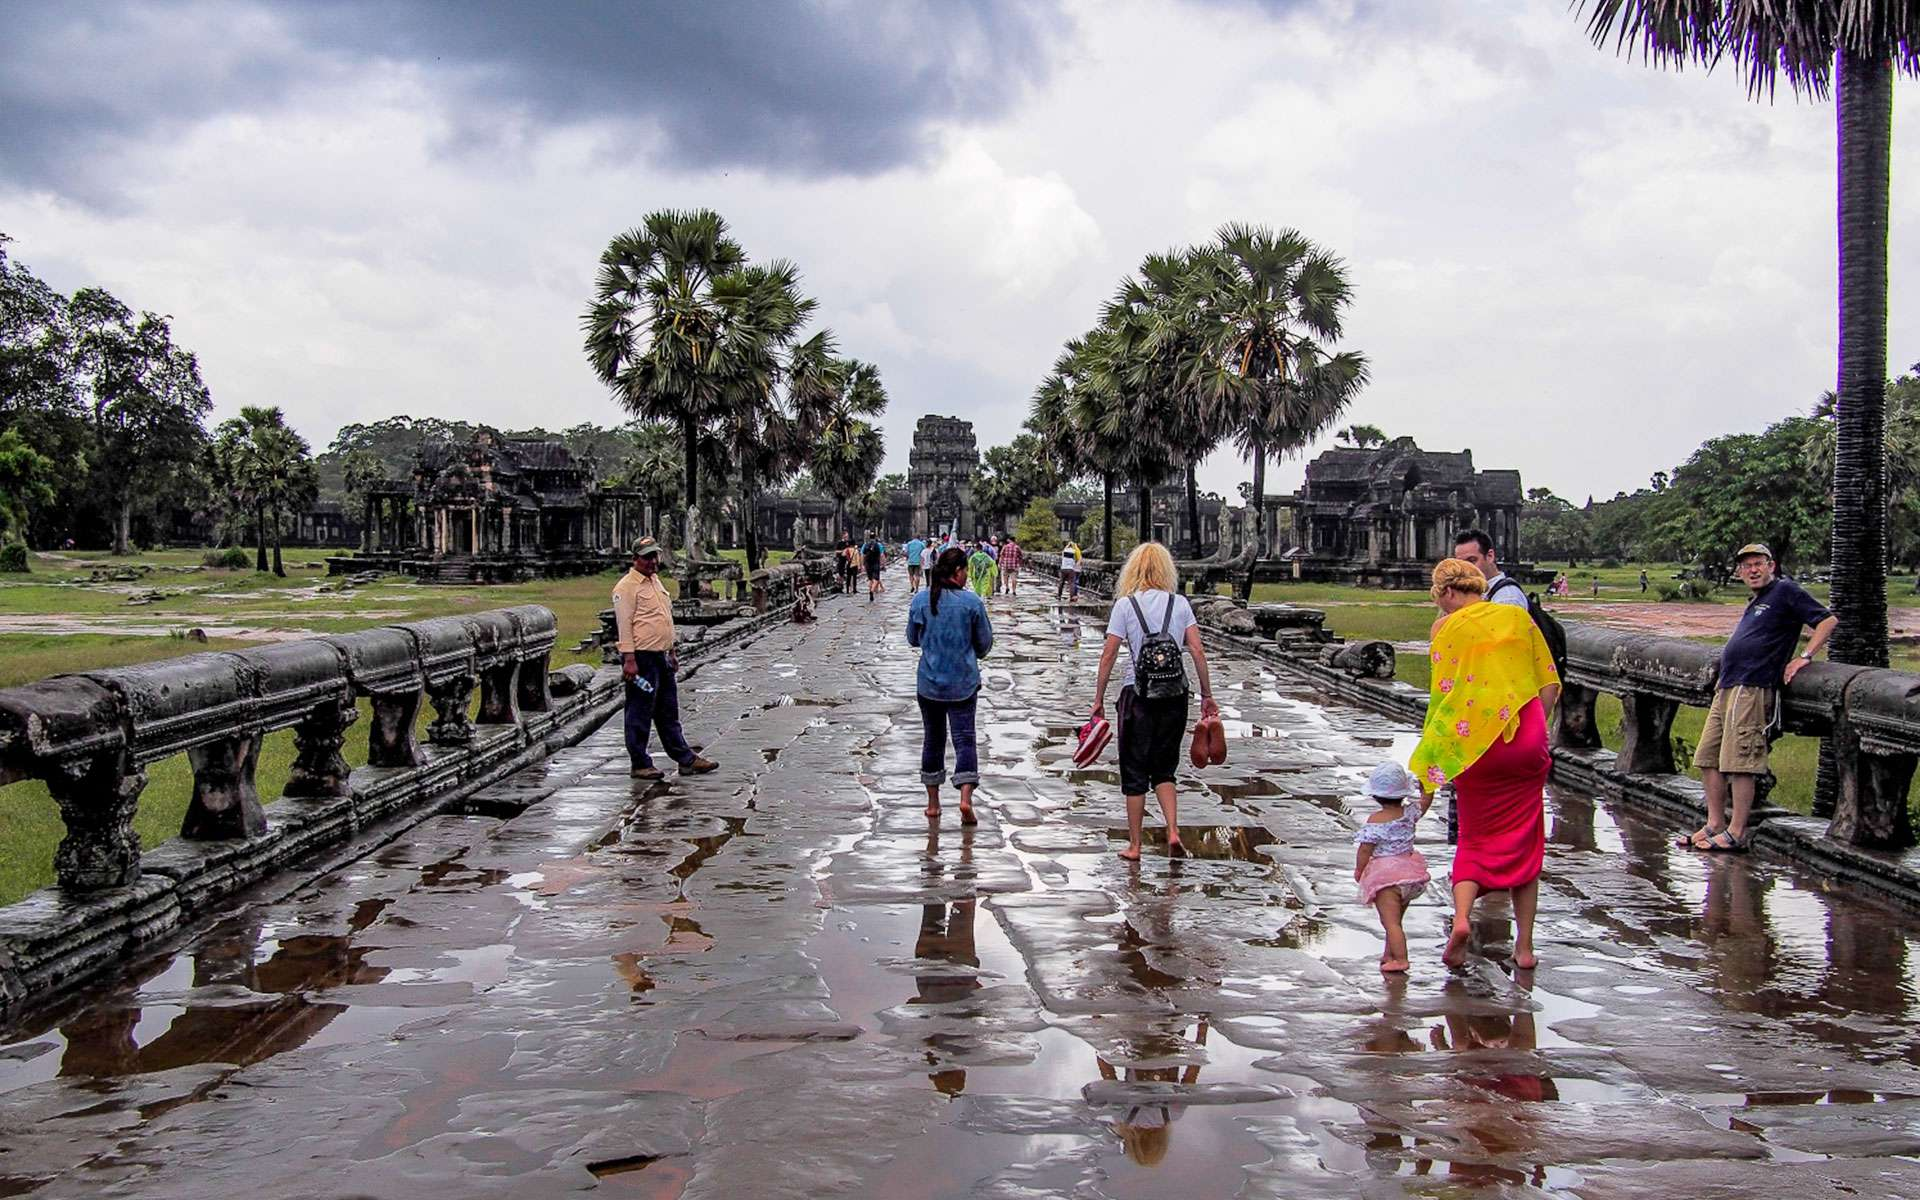 rainfall typically comes in Cambodia in July